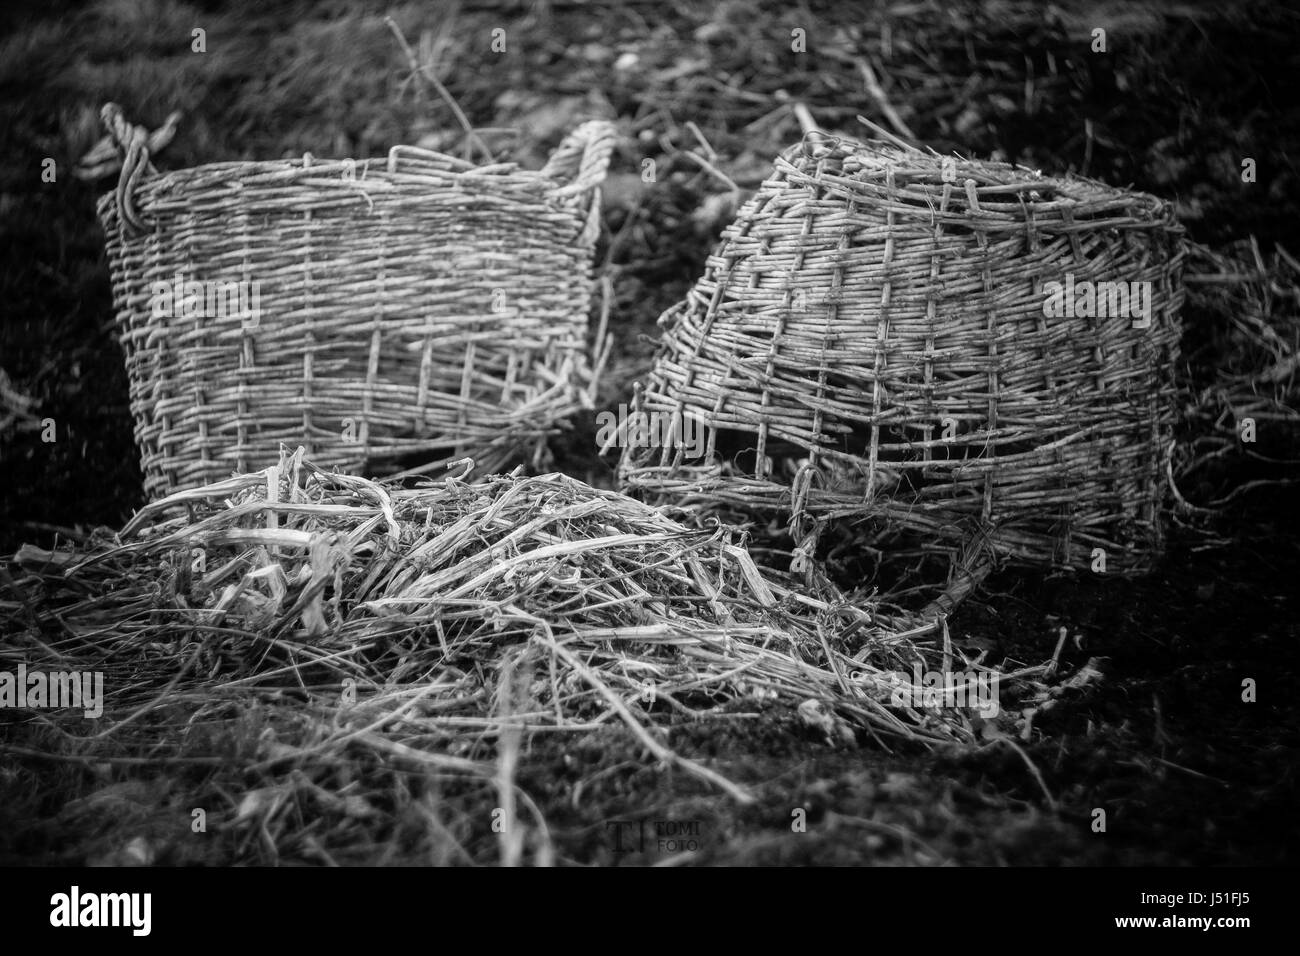 Old black and white basket - Stock Image